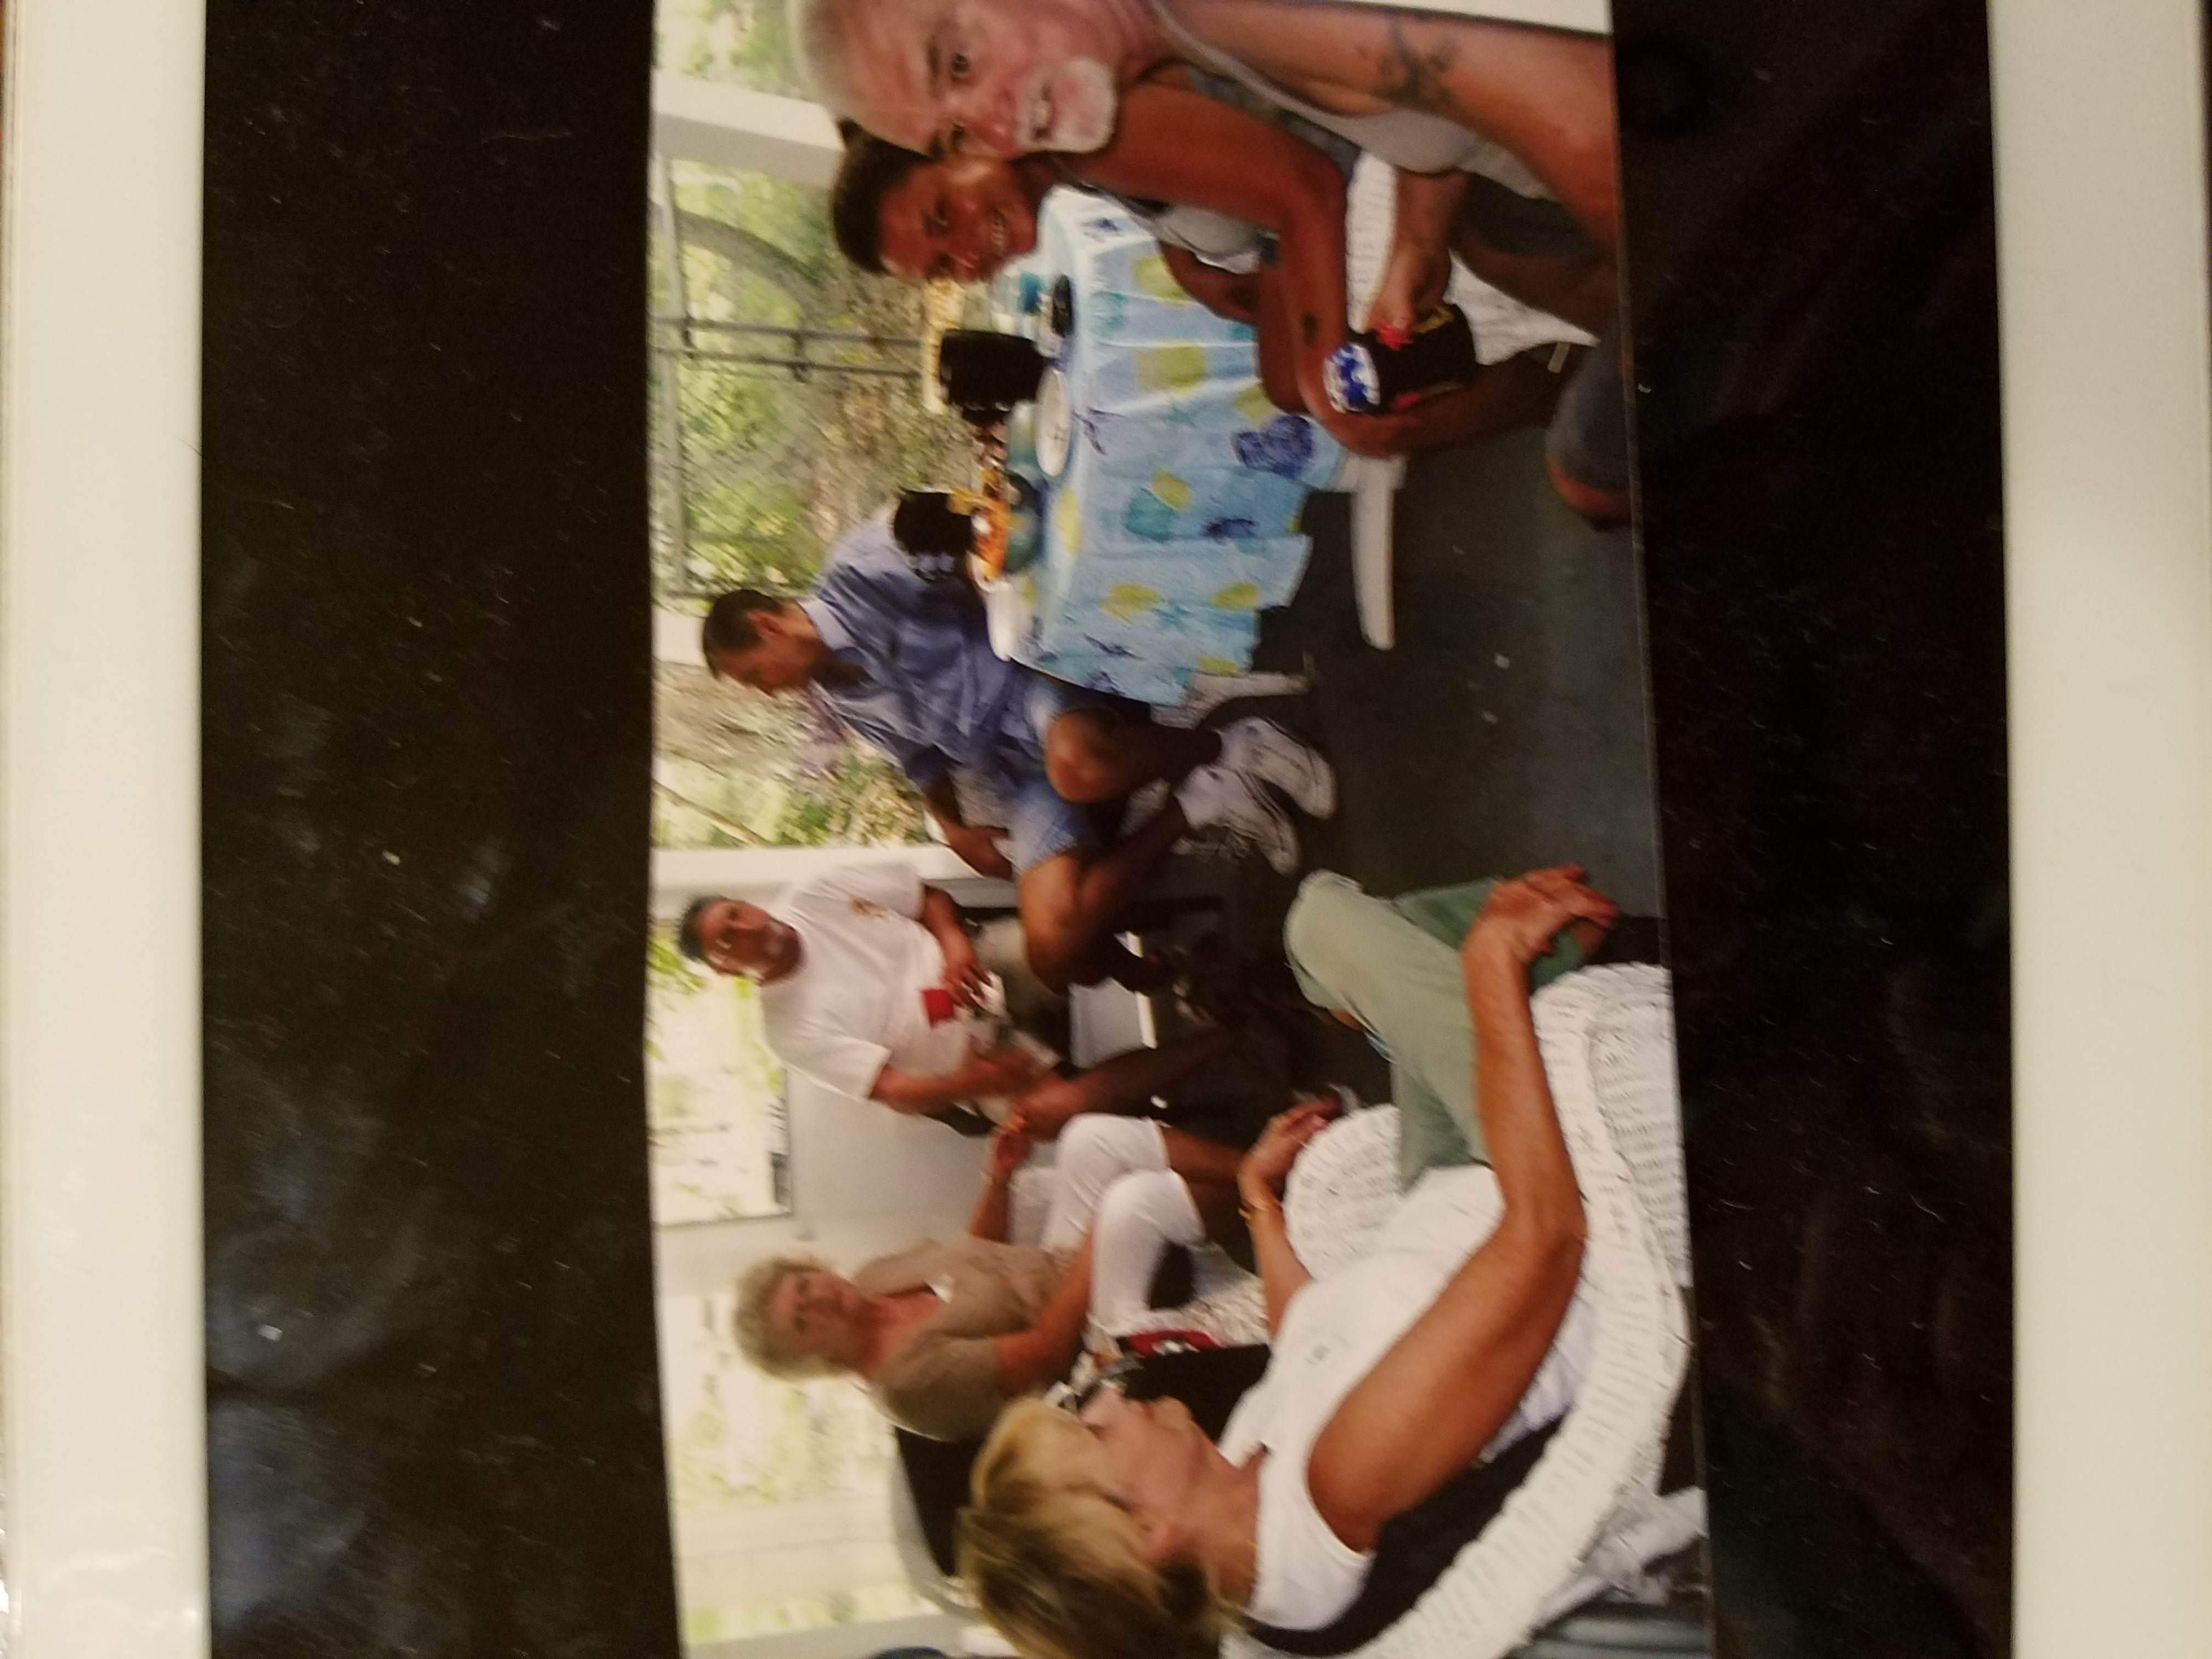 Florida 3 years ago with her brother x sister in law..her neice Me..Her x boyfriend..who she loved so very much..and her sister robertas x..Jim...what a great Memory this fay was..we all were Smiling..May you rest..your work here is done..god caled ypu home..ypur now telling all a great Story..from Down here..im Sure Jimmy got his Ear to your Mouth .LOL rest now...love you so di xoxo